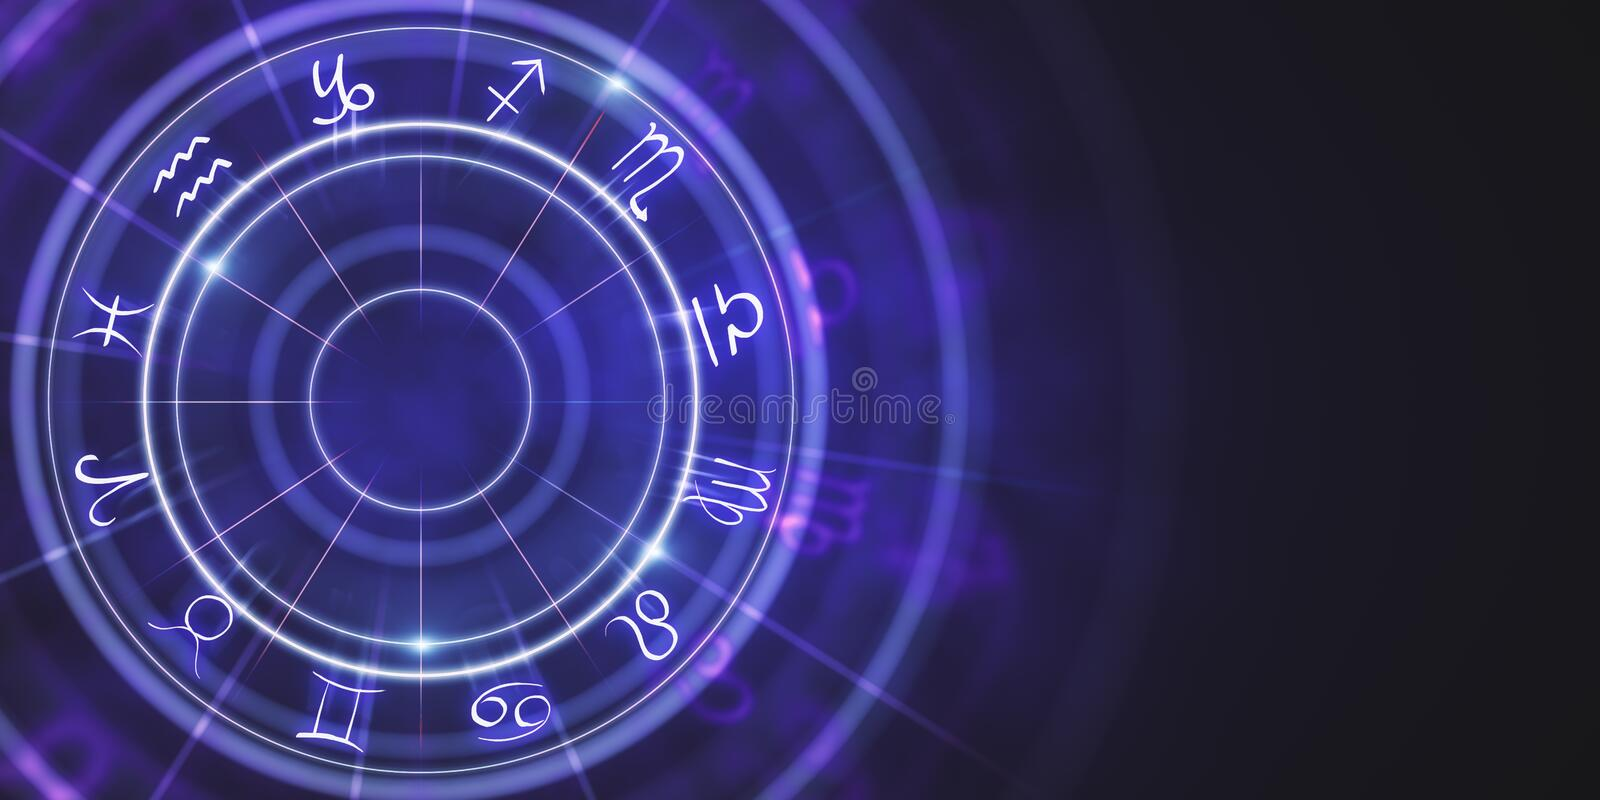 Abstract zodiac wheel wallpaper vector illustration